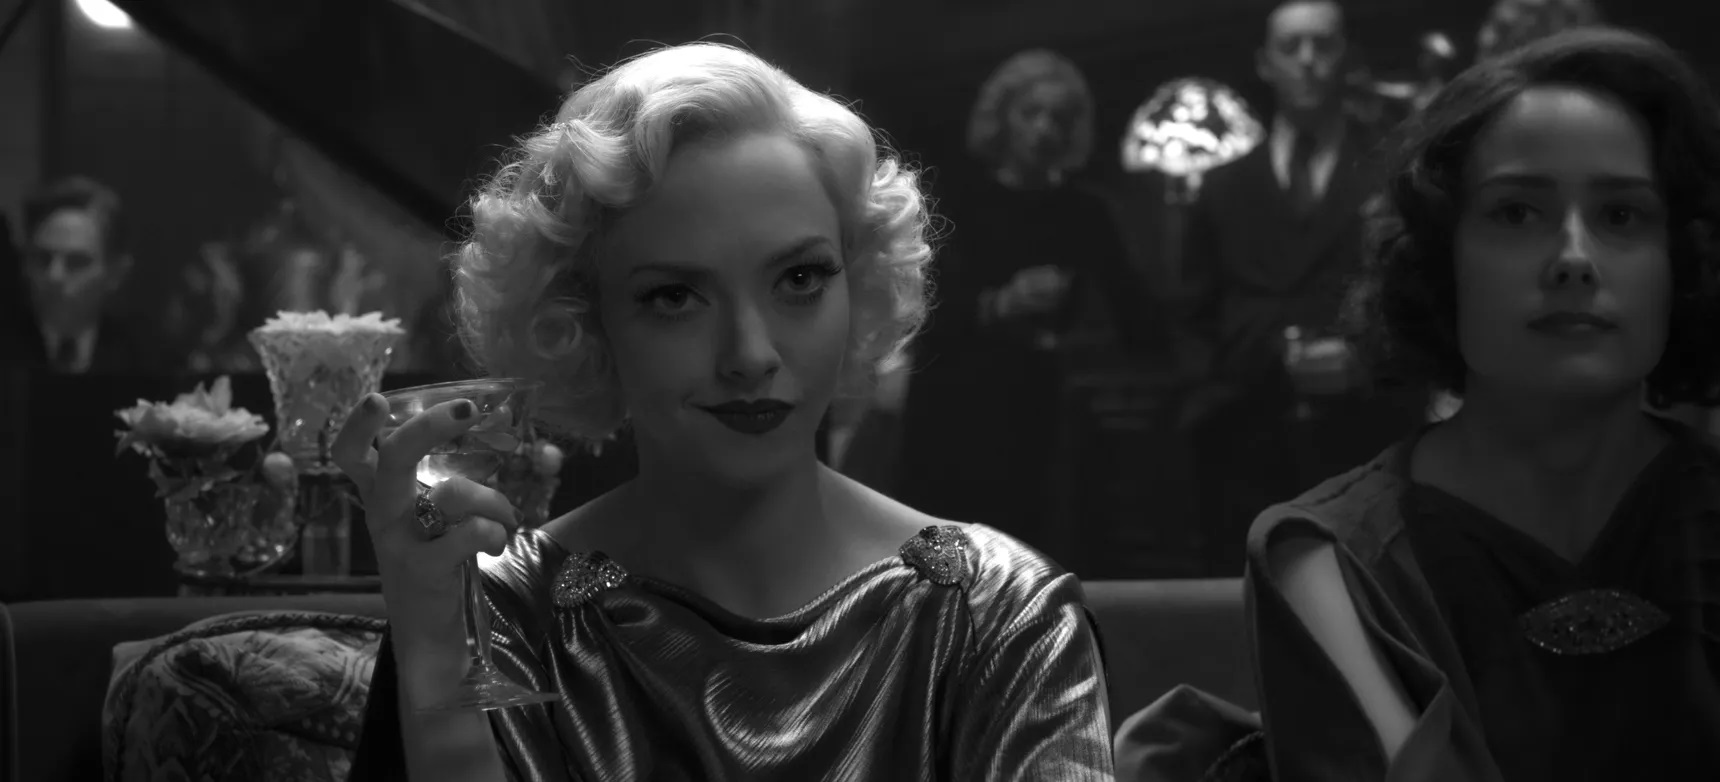 Amanda Seyfried, as Marion Davies in Mank, sits at a party in formal dress. Sheis holding a martini and has a wry smile on her face.